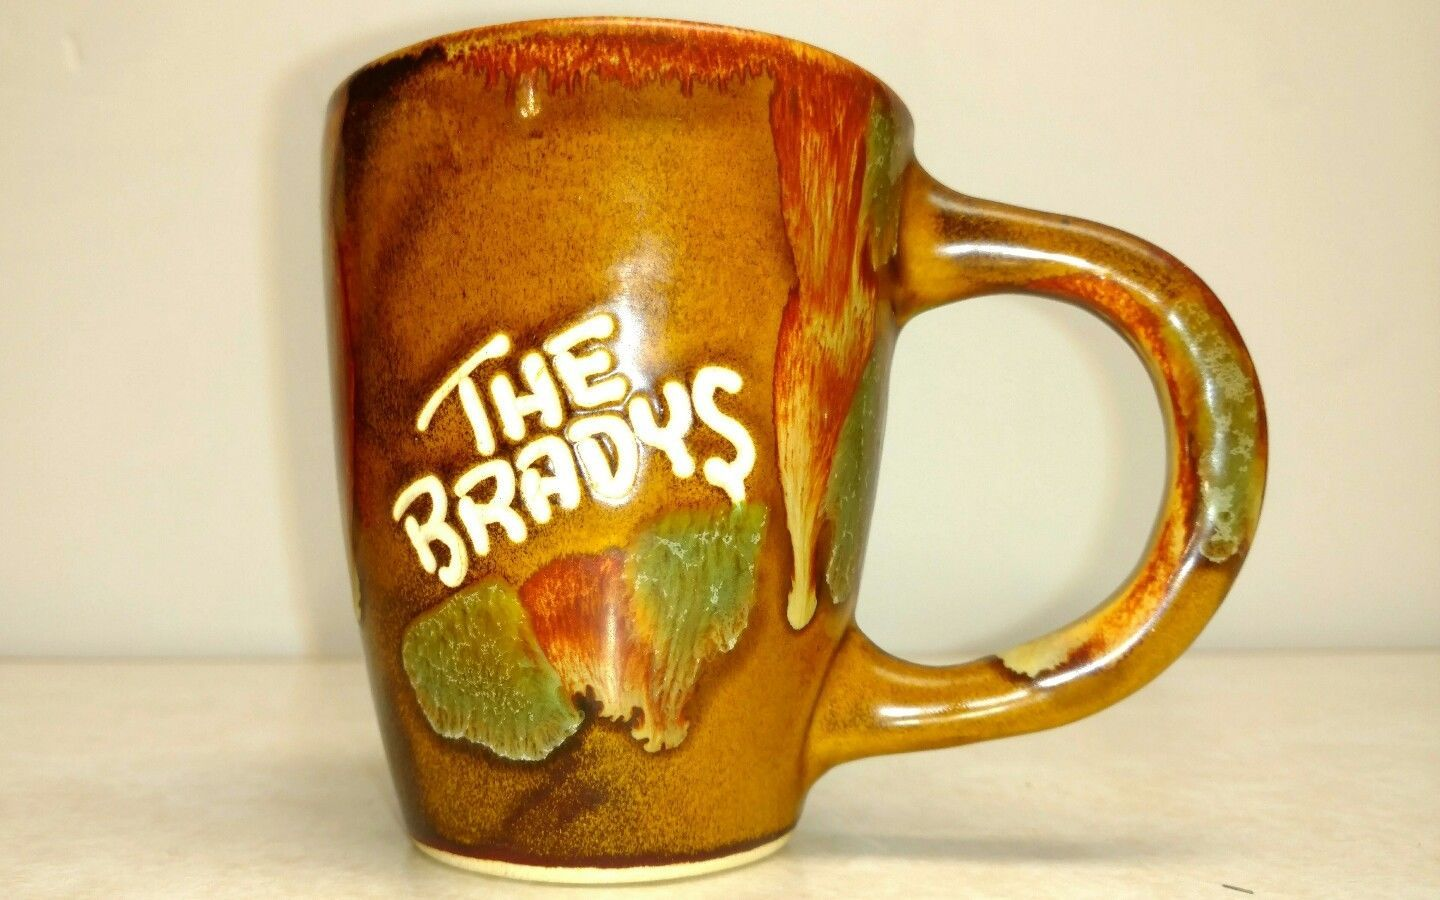 THE BRADYS Personalized Dryden Hot Springs ARK Drip Coffee Tea Cup Mug Pottery - $9.49